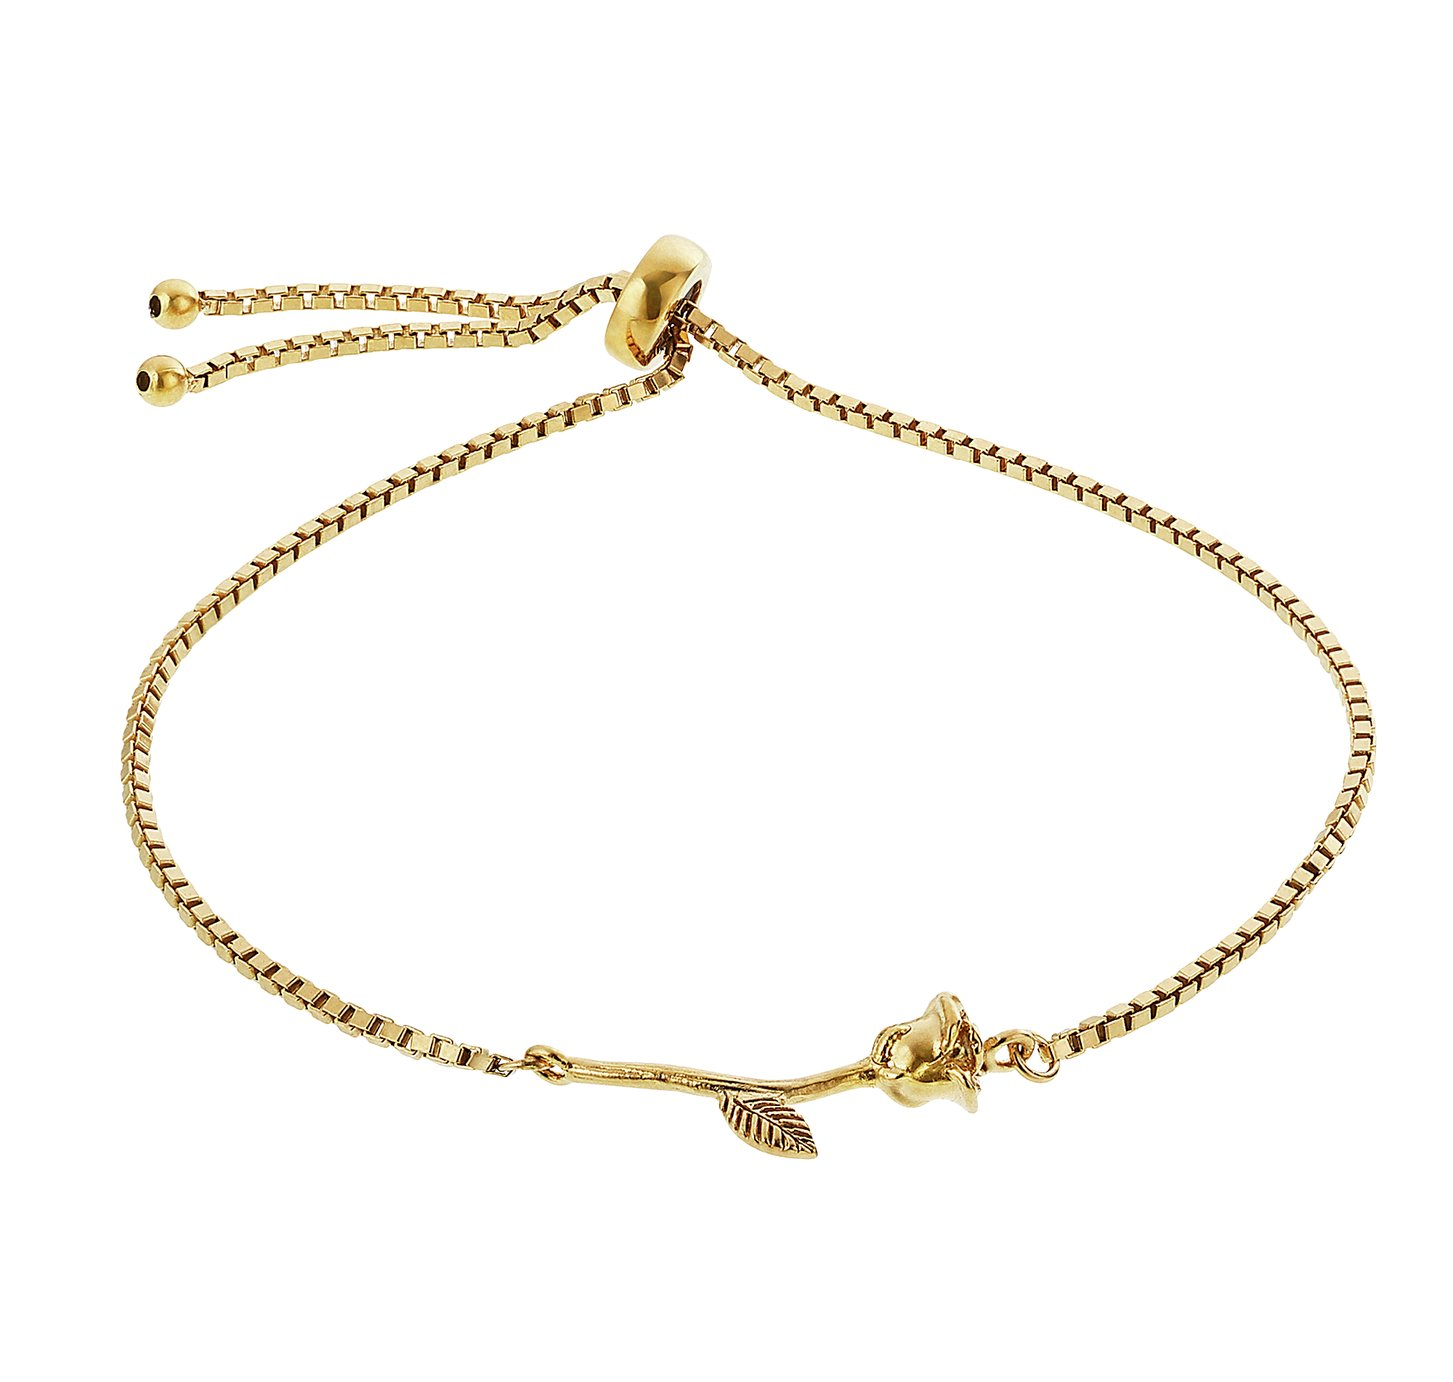 Disney Beauty and the Beast 9ct Gold Plated Silver Bracelet